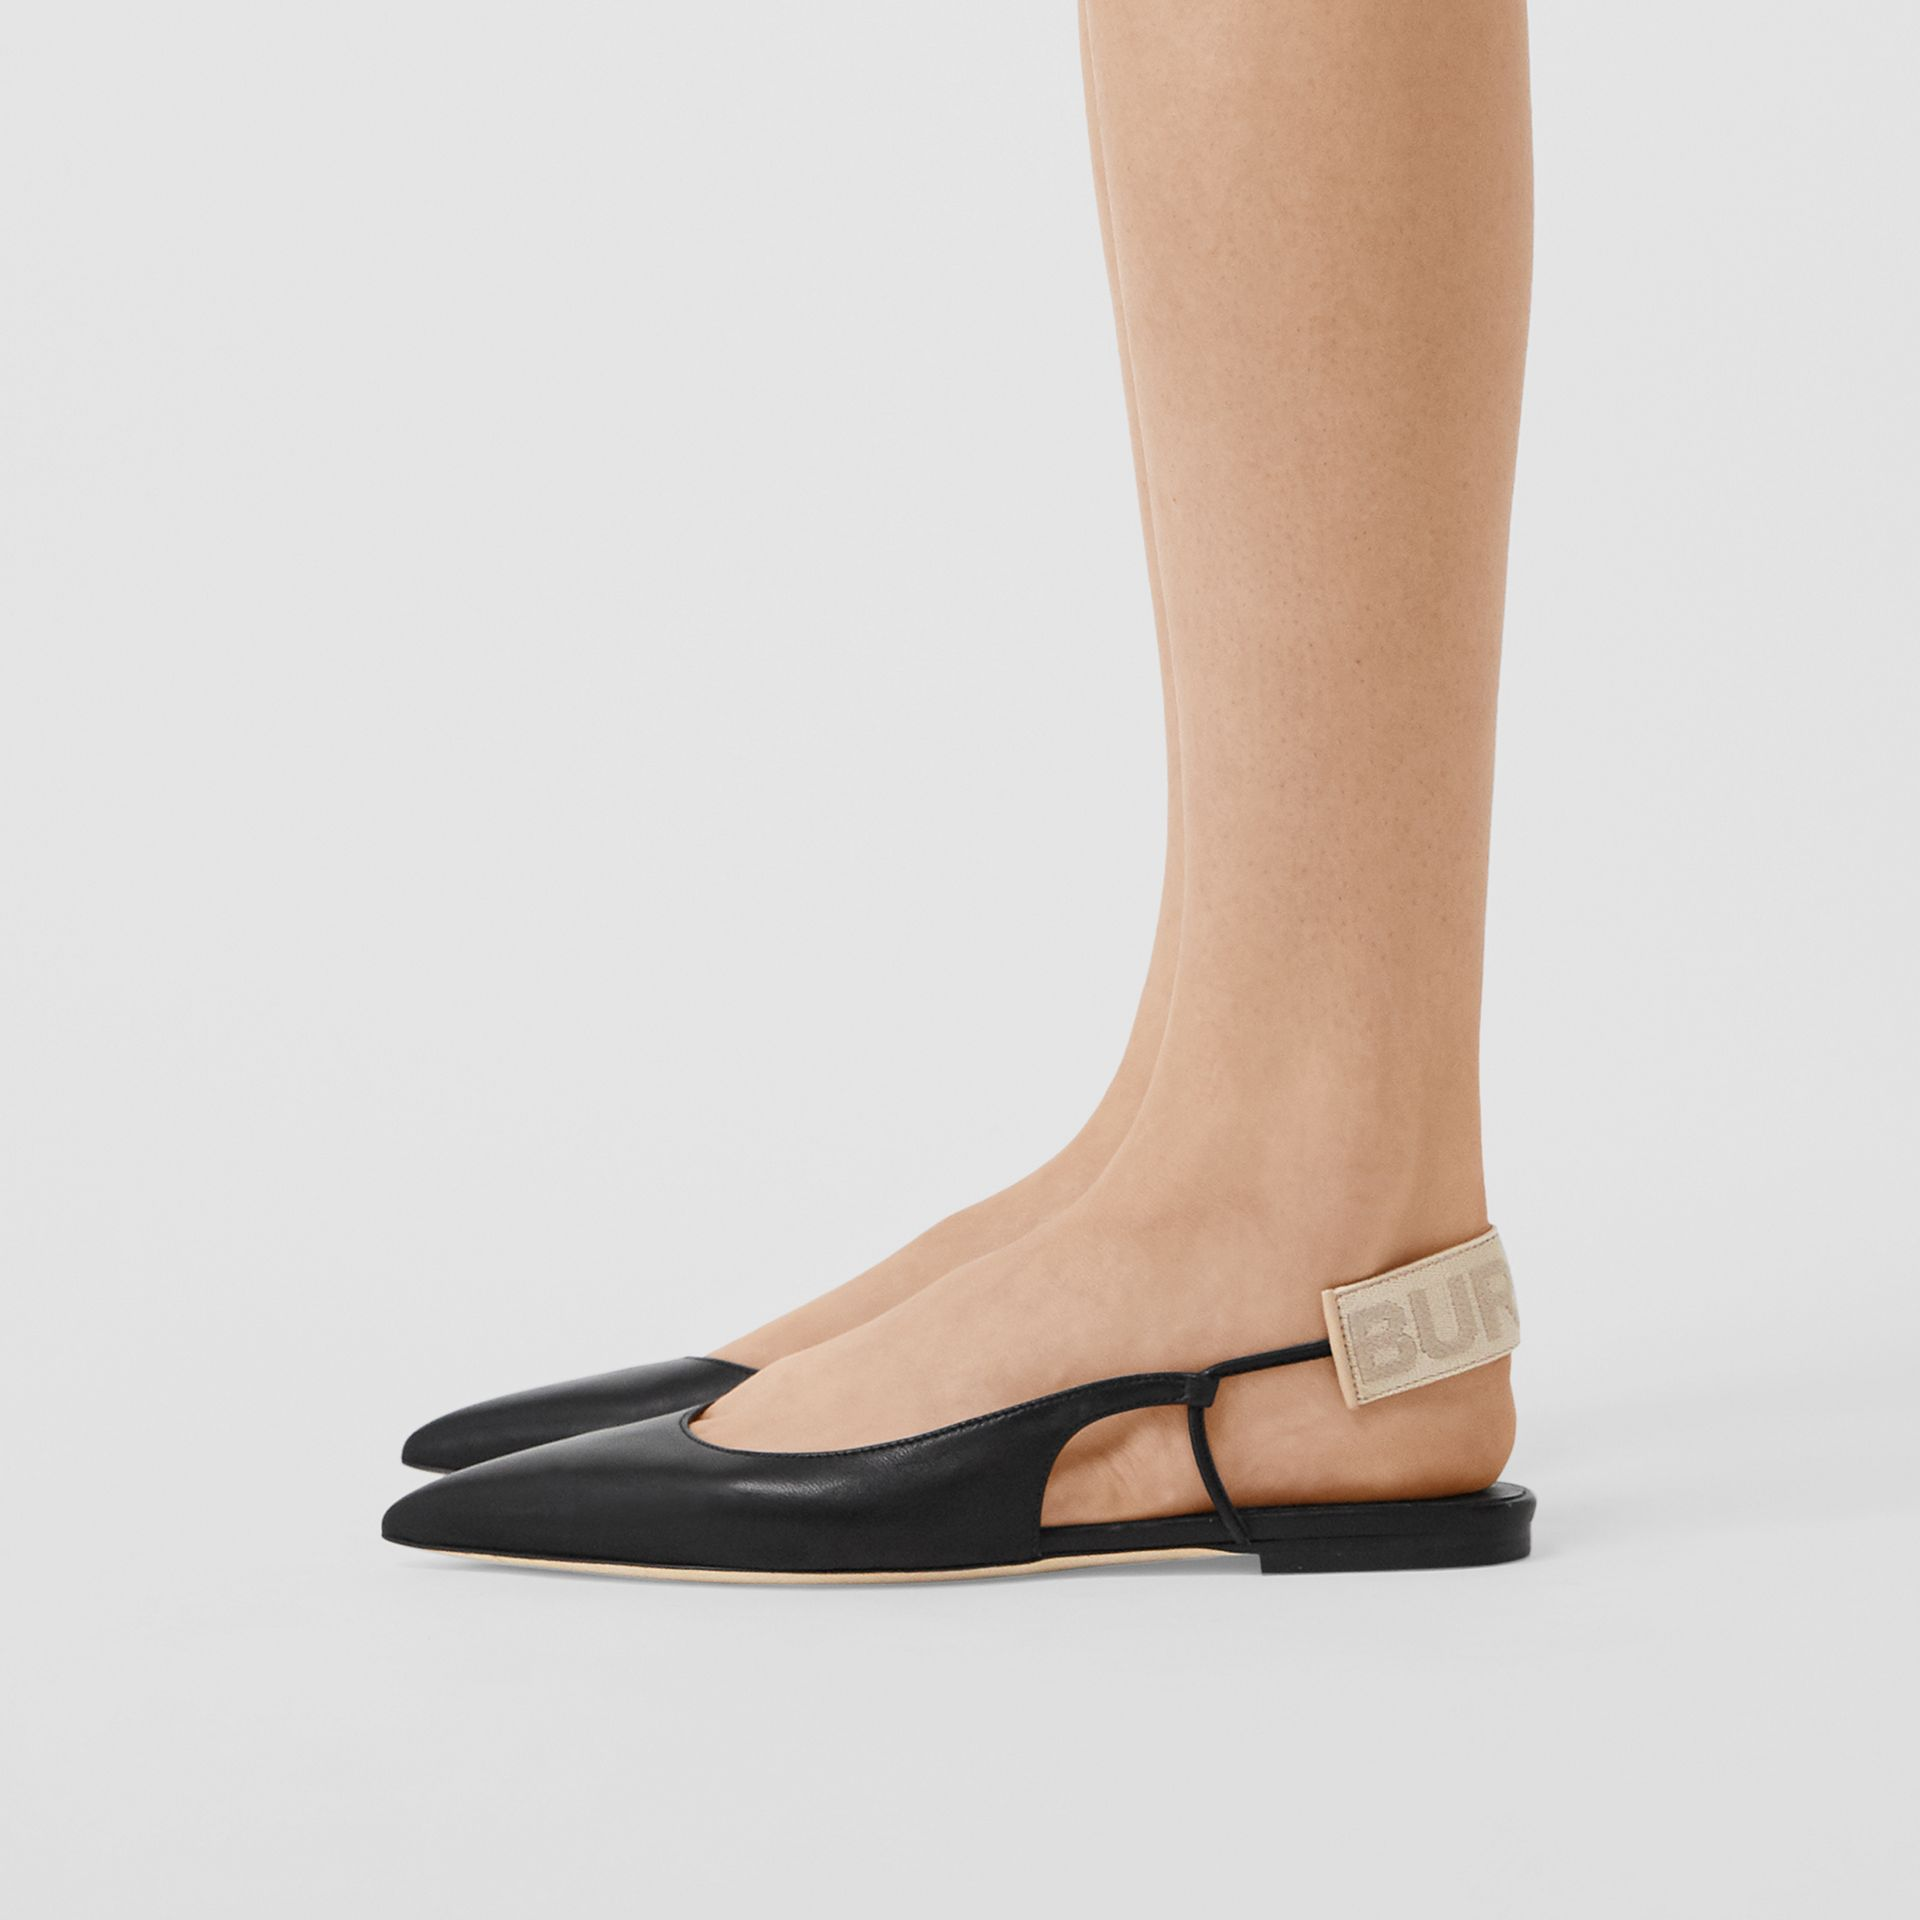 Logo Detail Leather Slingback Flats in Black - Women | Burberry Hong Kong S.A.R - gallery image 2